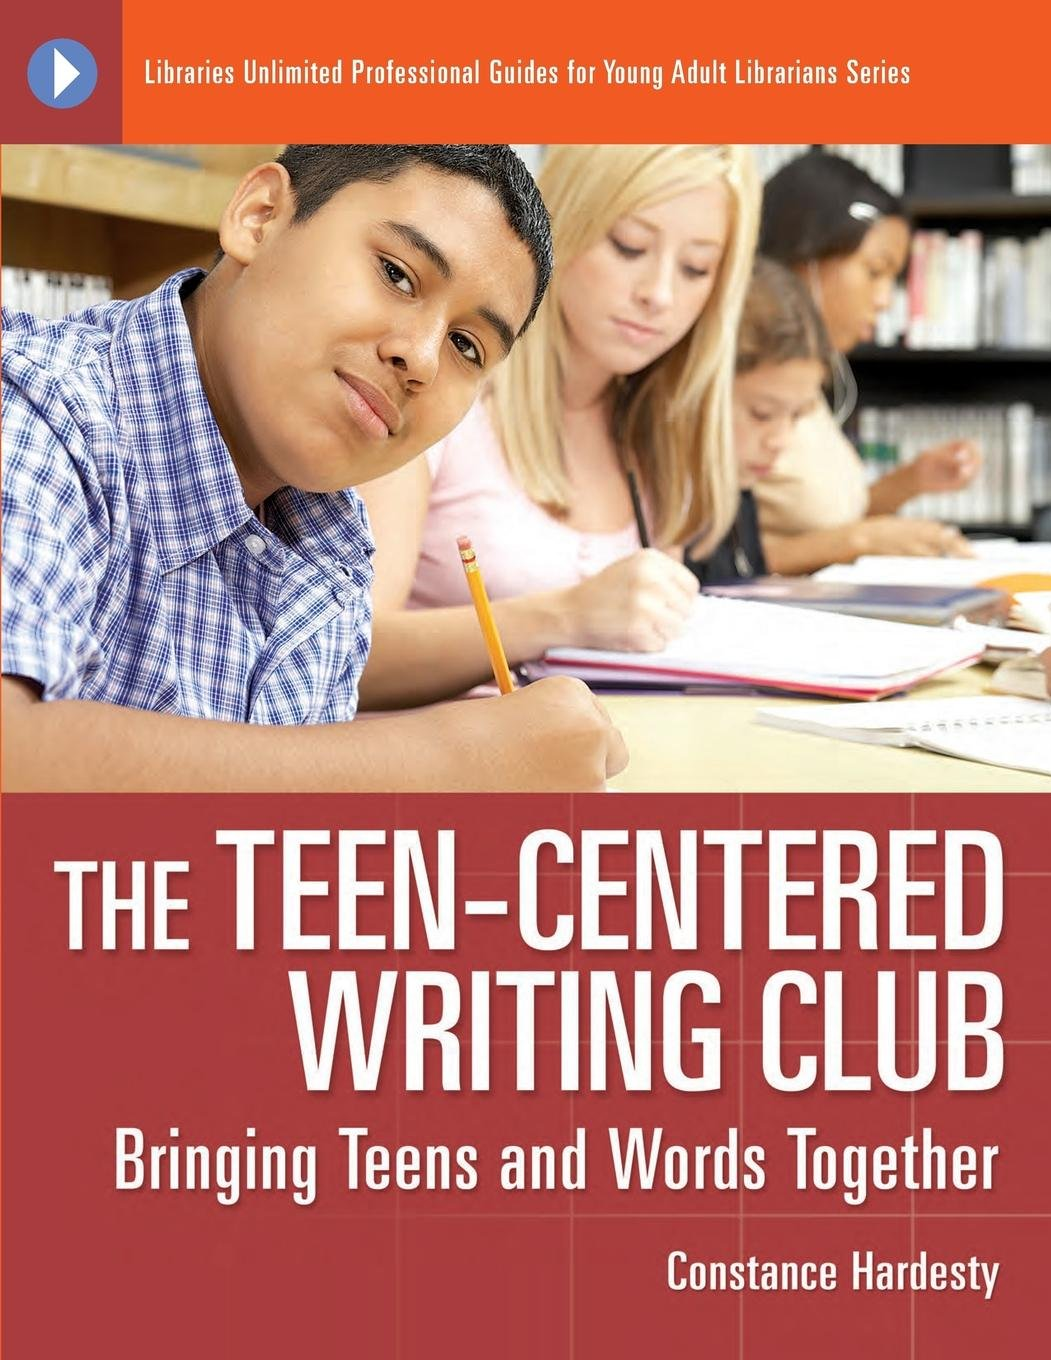 Download The Teen-Centered Writing Club: Bringing Teens and Words Together (Libraries Unlimited Professional Guides for Young Adult Librarians Series) pdf epub